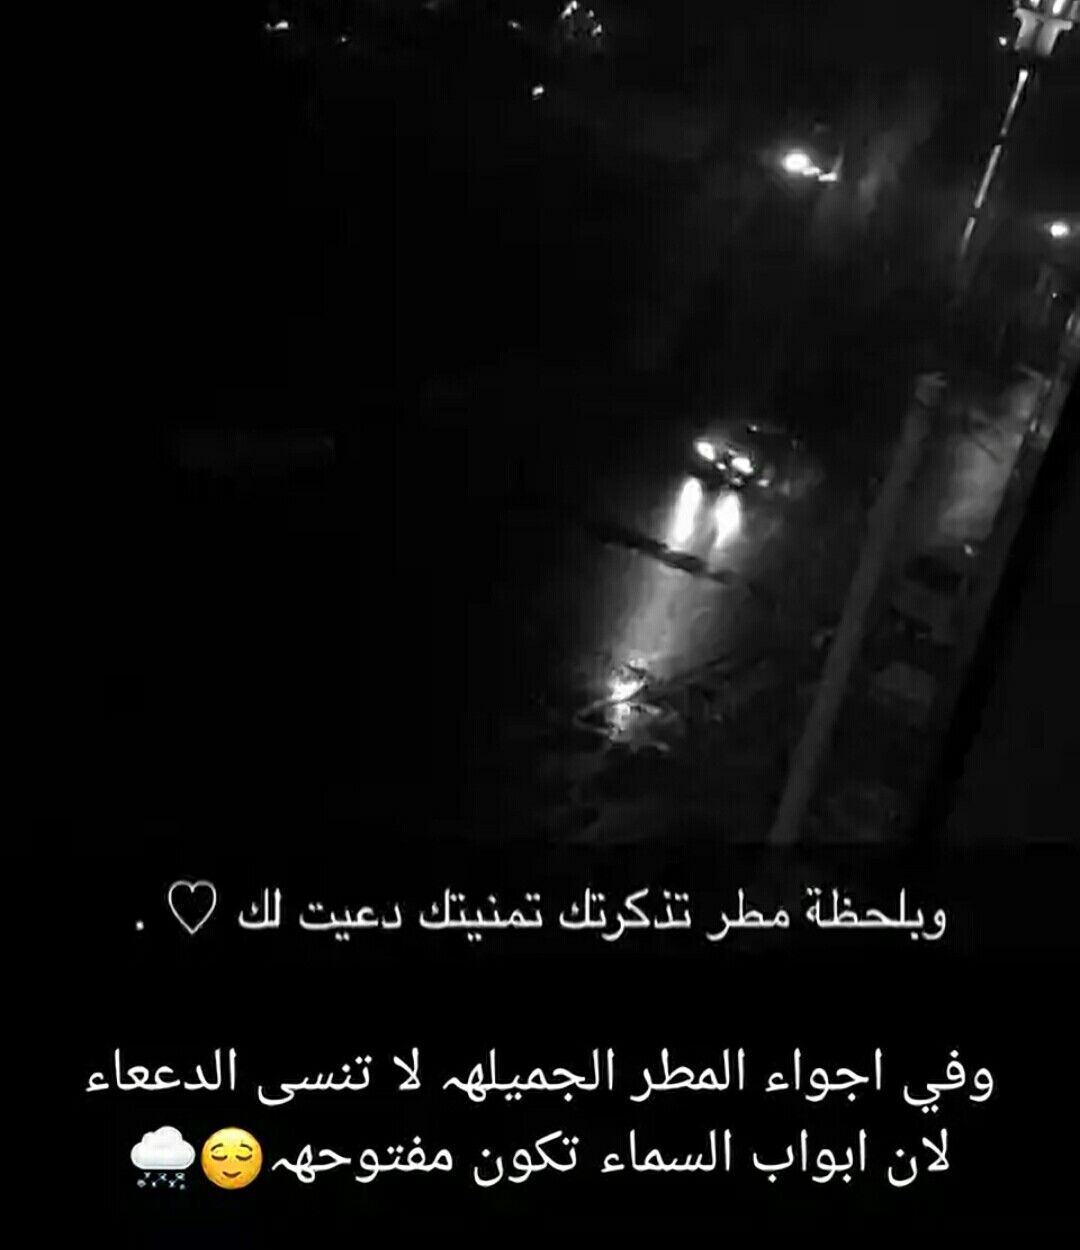 Pin By Hie07 On سناب شات Beautiful Words Words Dsi